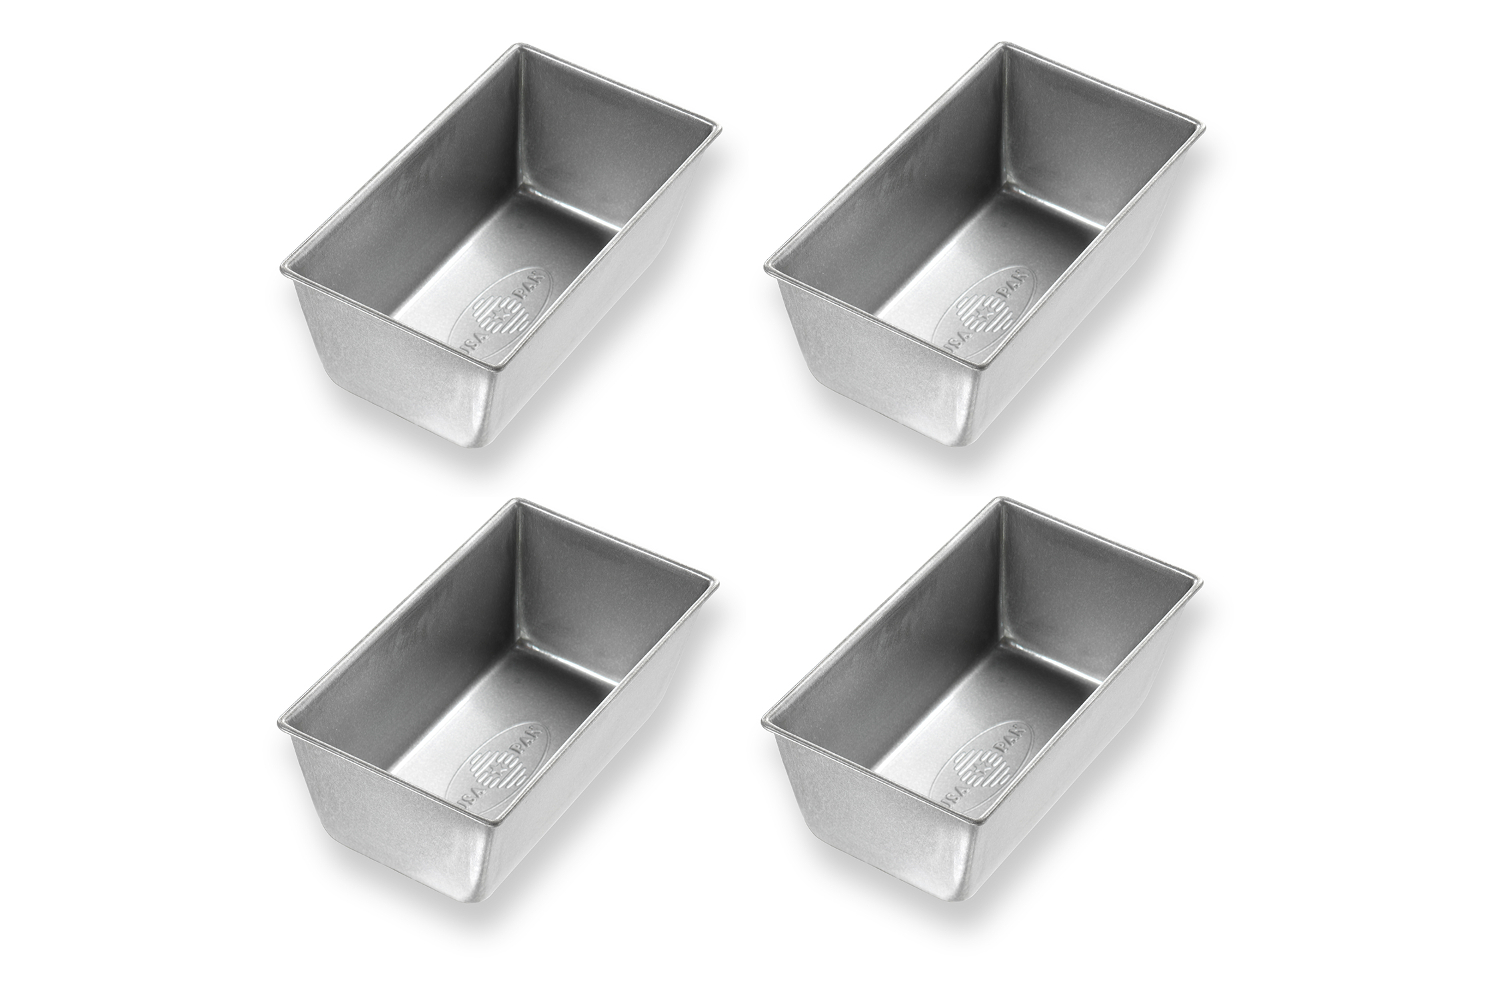 USA Pan Bakeware Mini Loaf Pan - Set of 4